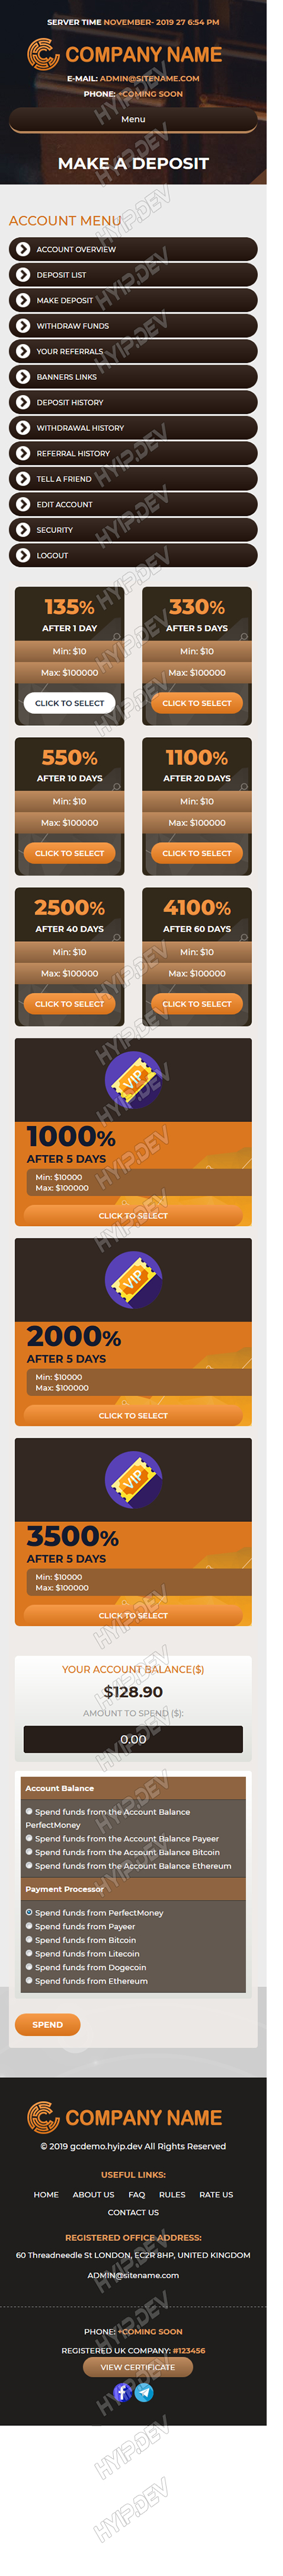 goldcoders hyip template no. 098, mobile page screenshot